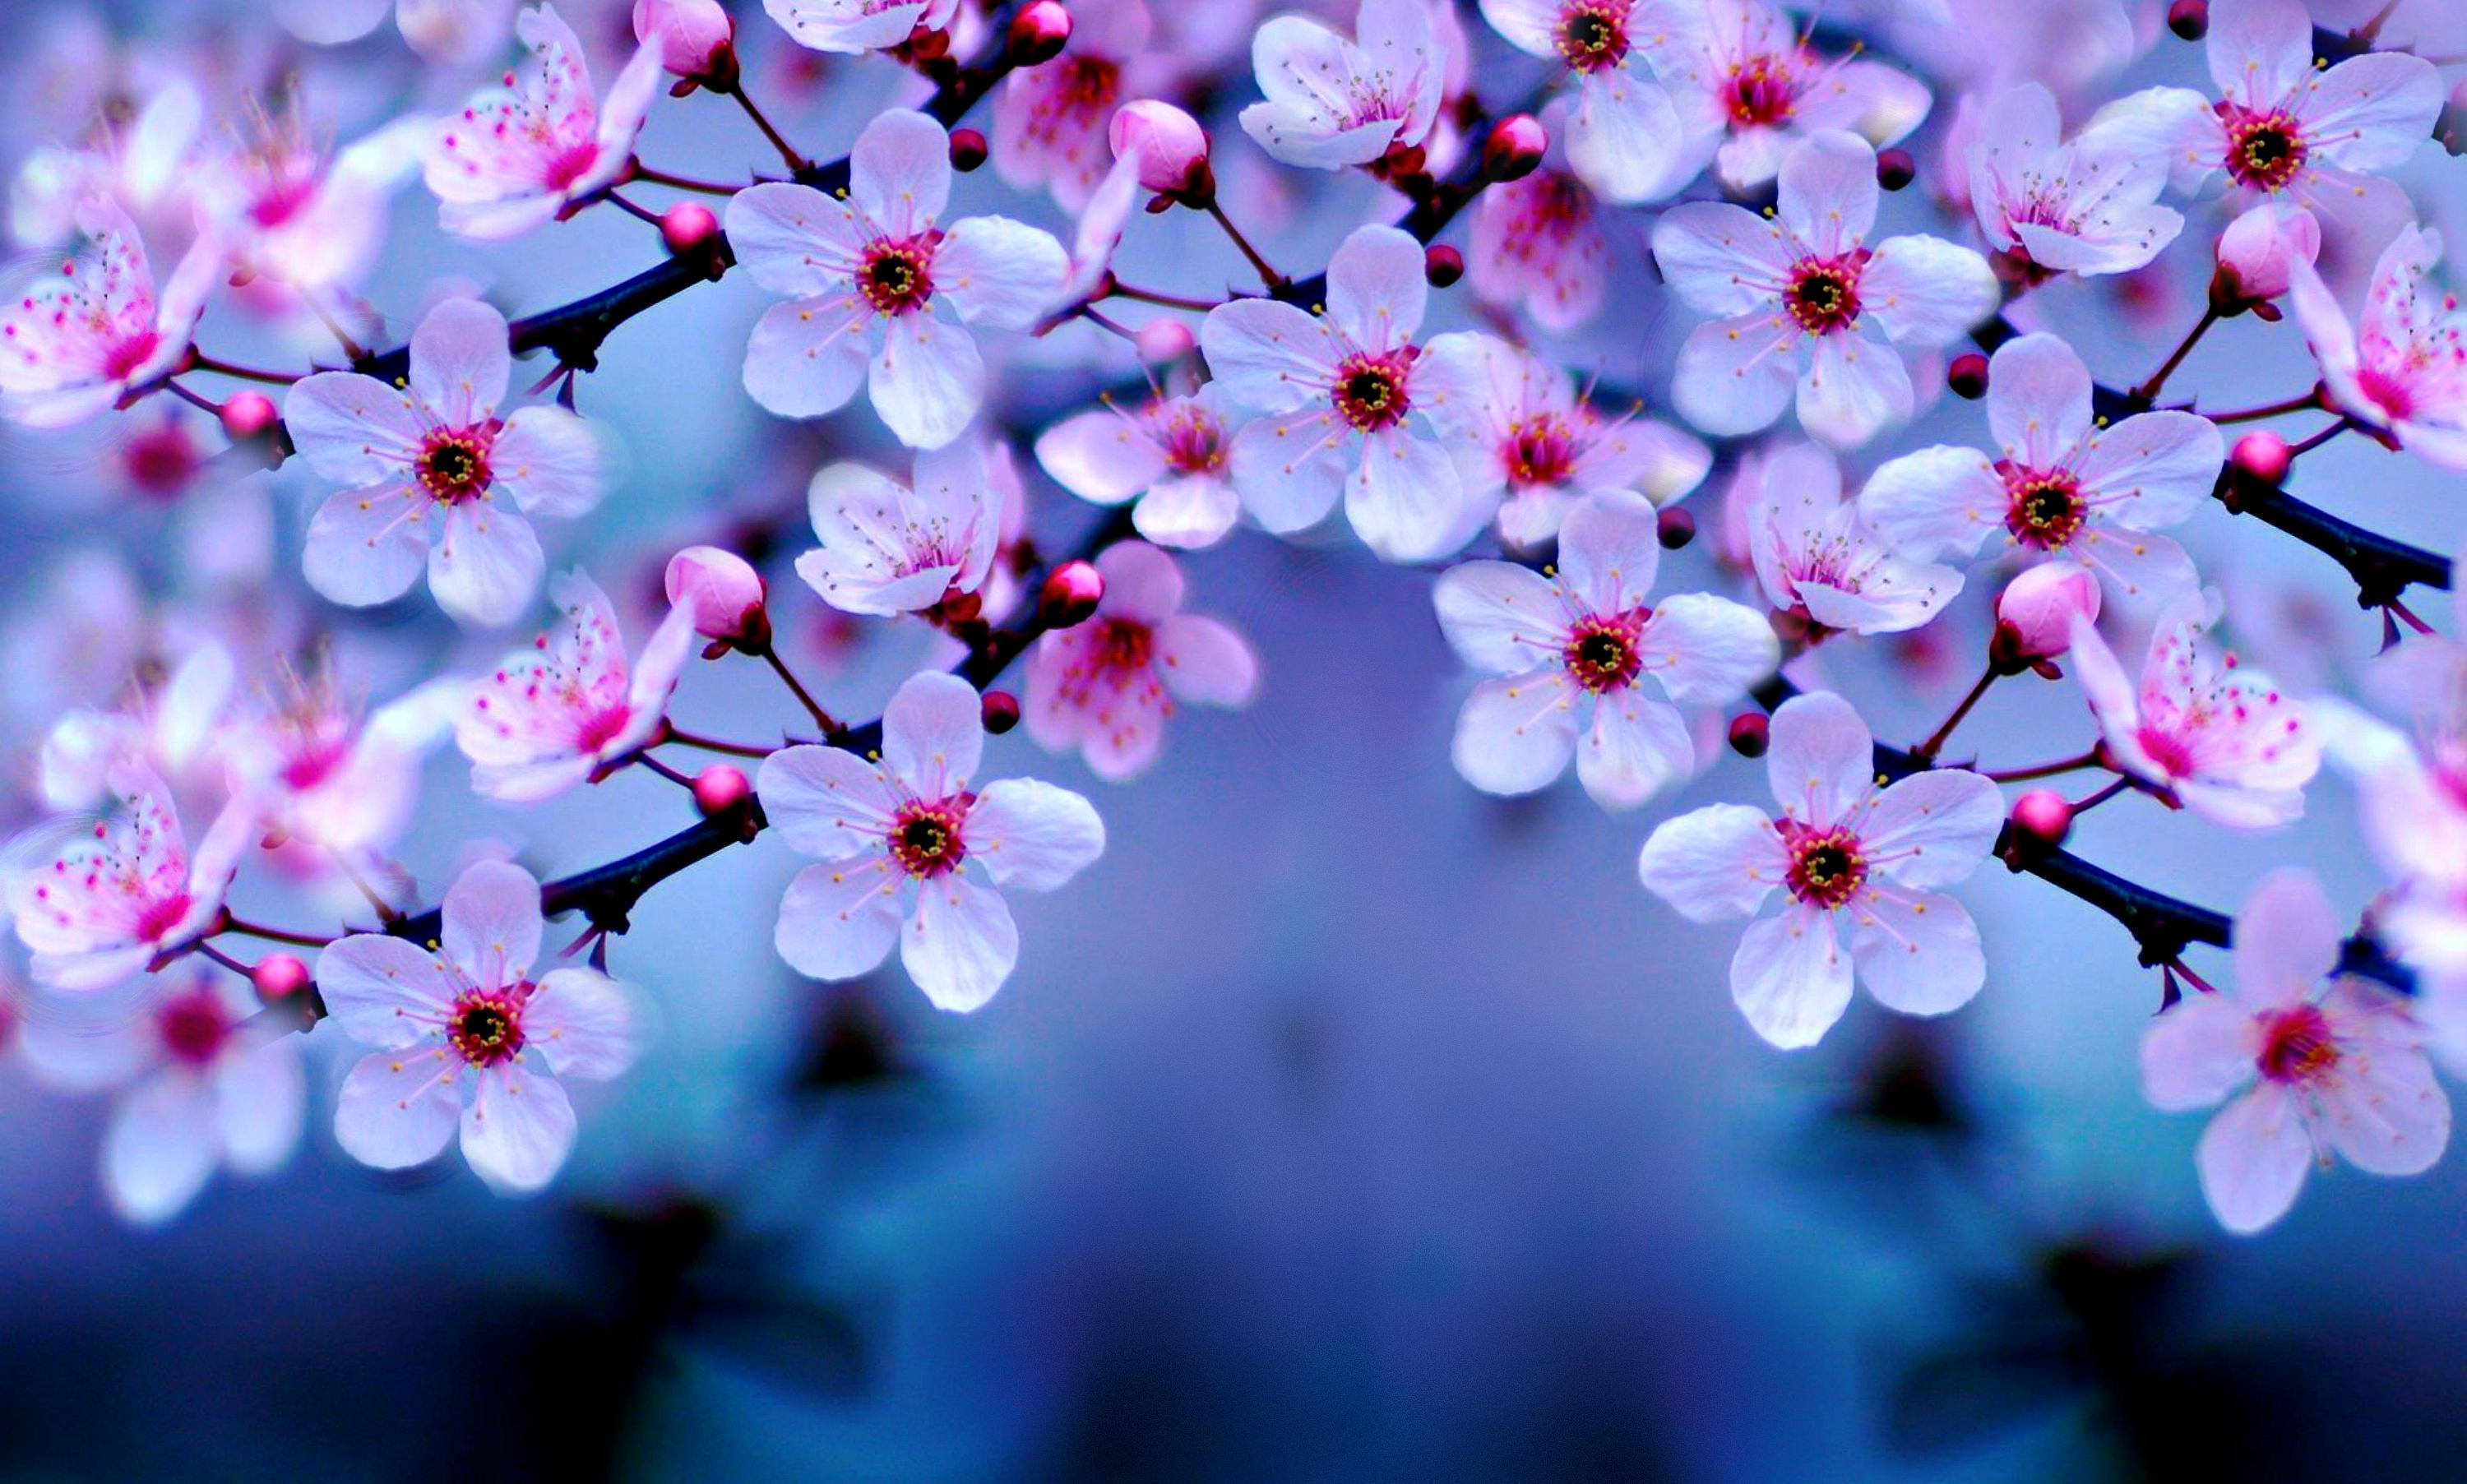 cherry blossom desktop backgrounds  wallpaper cave, Natural flower